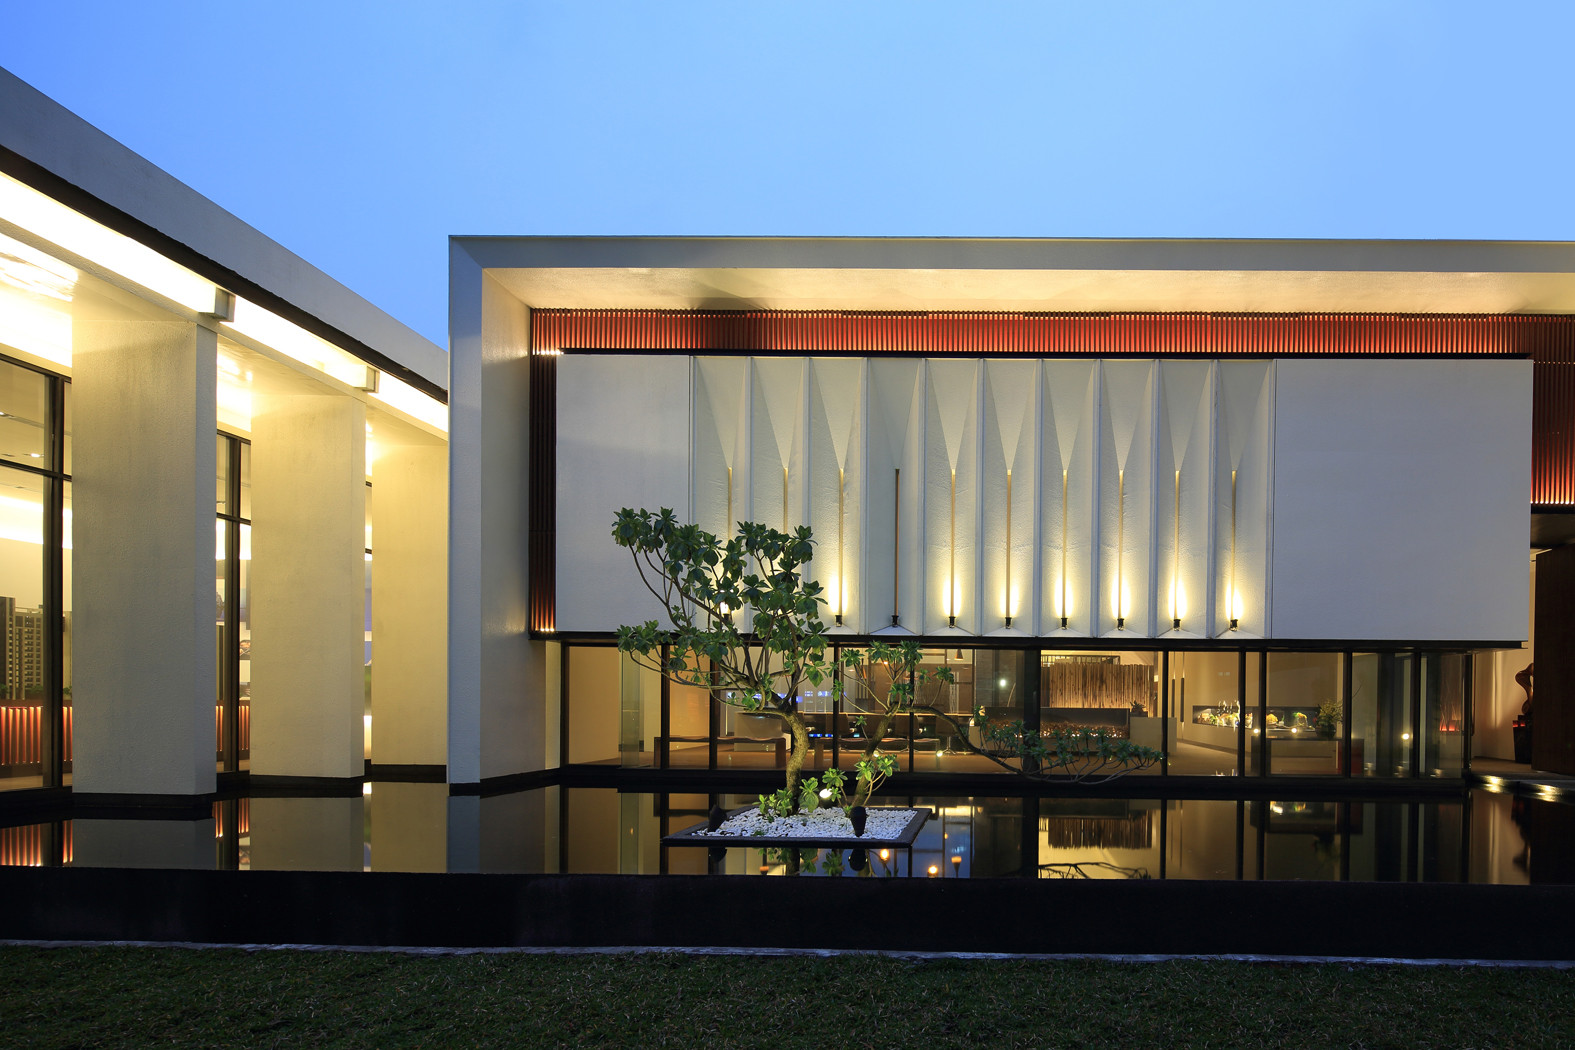 Gallery of exquisite minimalist arcadian architecture for Minimalist house materials